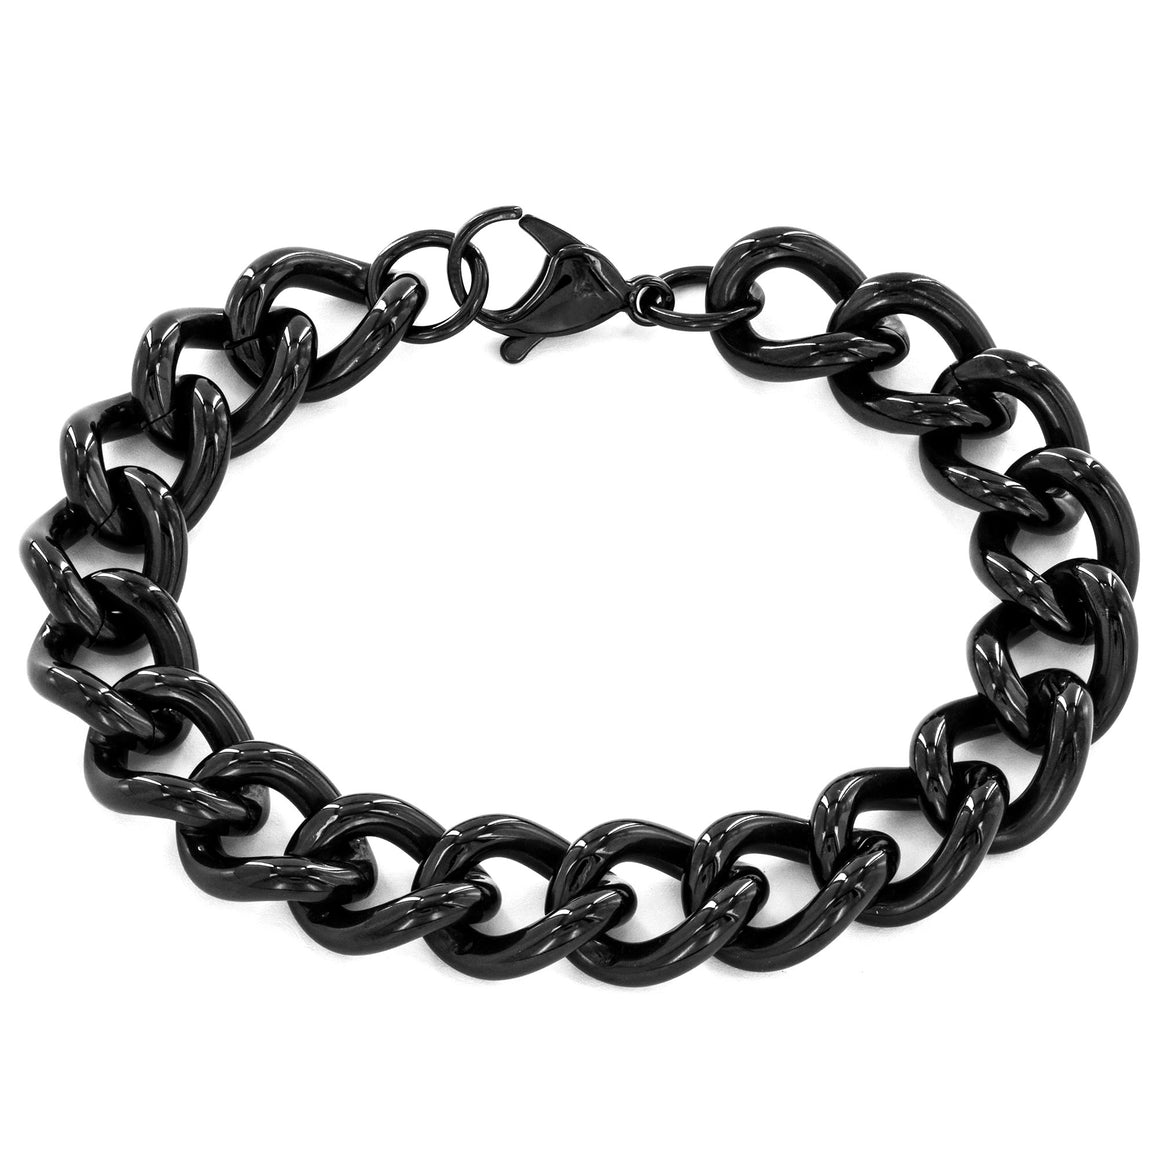 Crucible Stainless Steel Polished Classic Curb Chain Link Bracelet (4 mm) - 8.5""